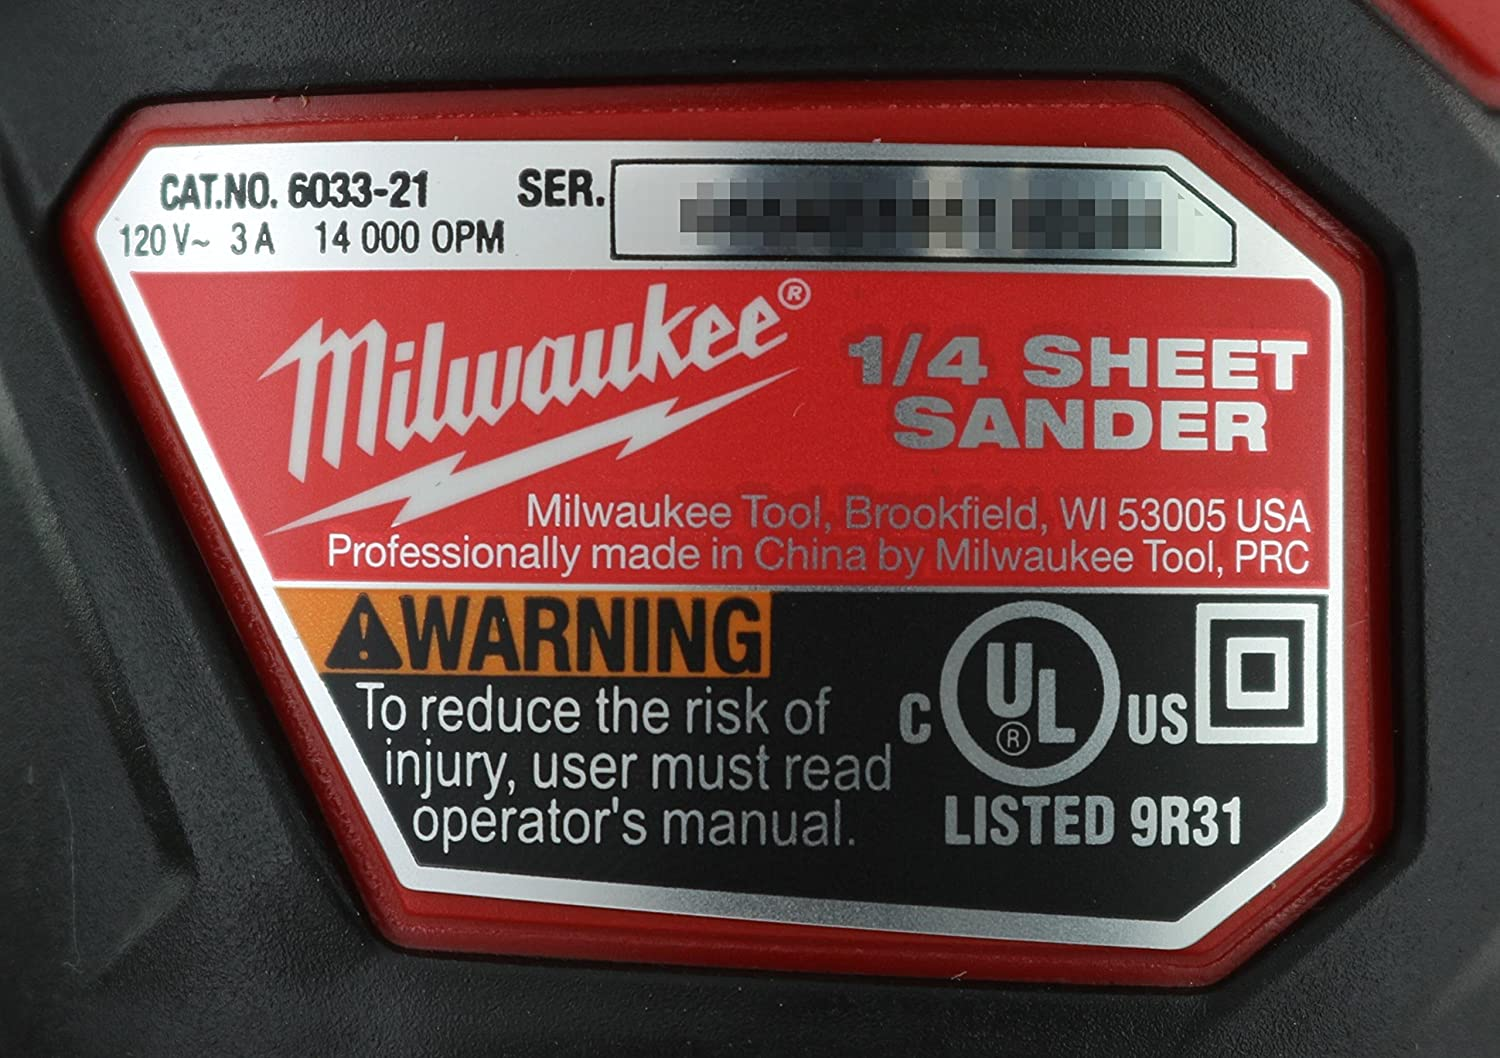 Milwaukee 6033-21 featured image 7